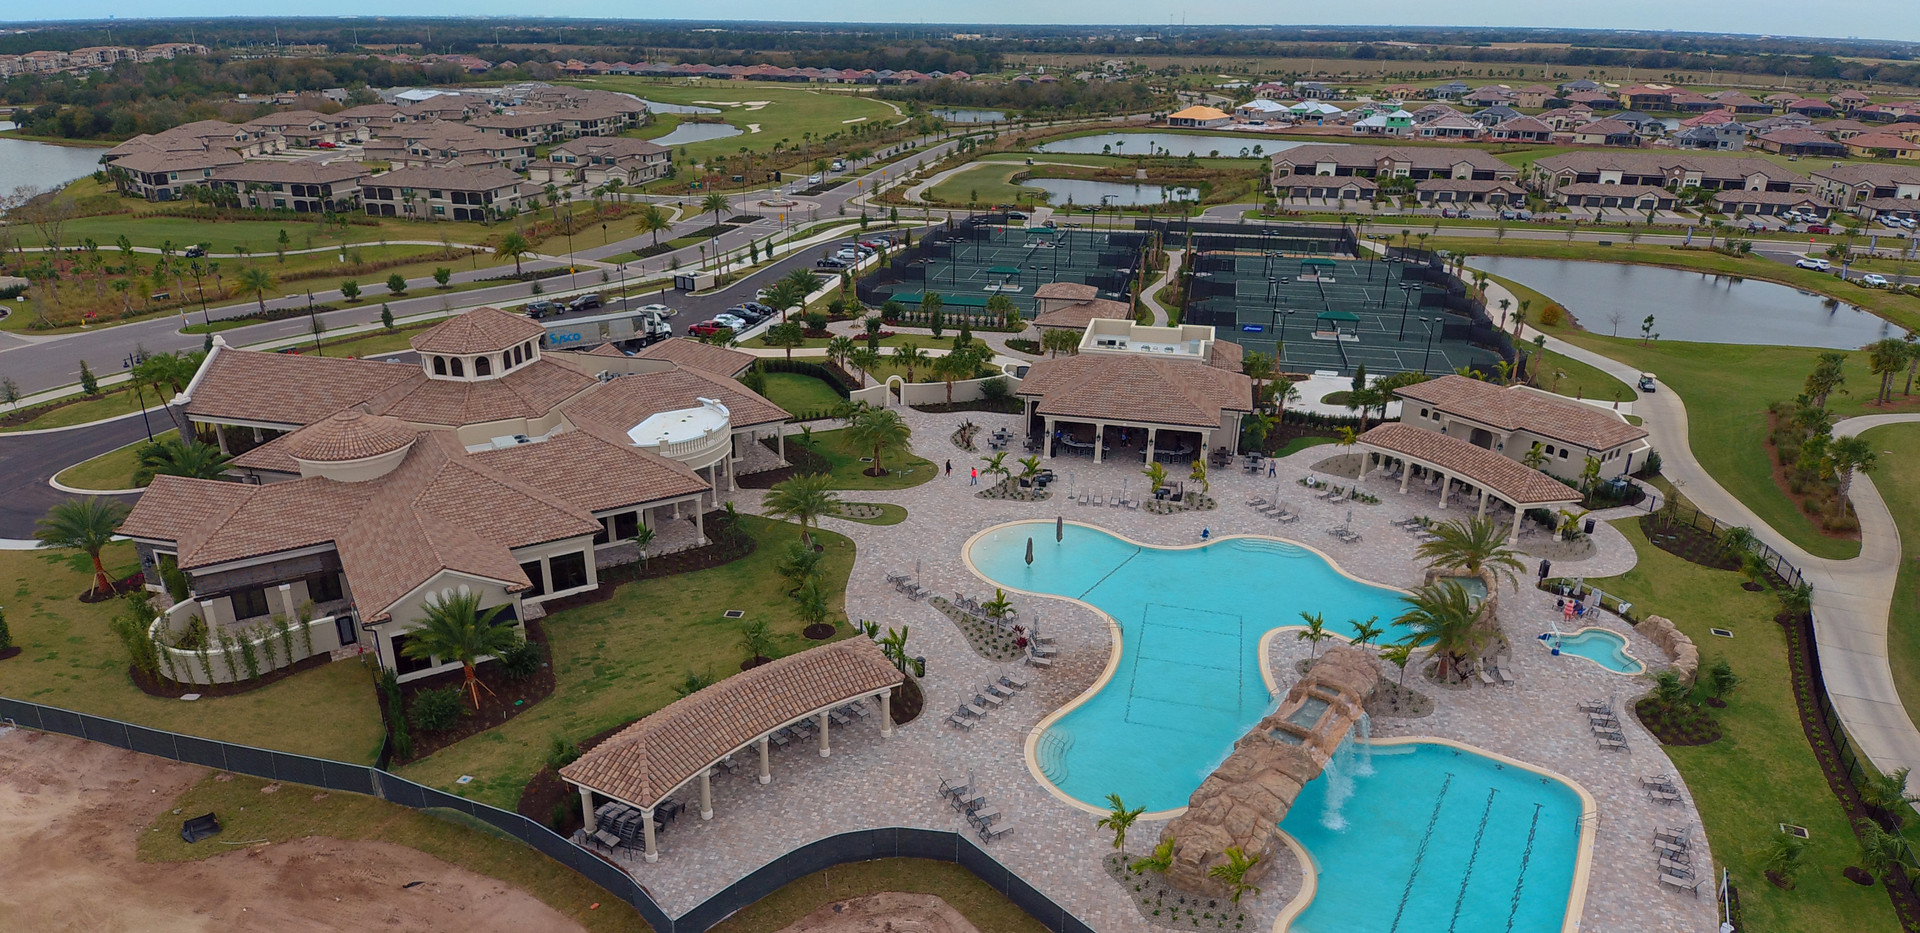 Lakewood National pool and clubhouse